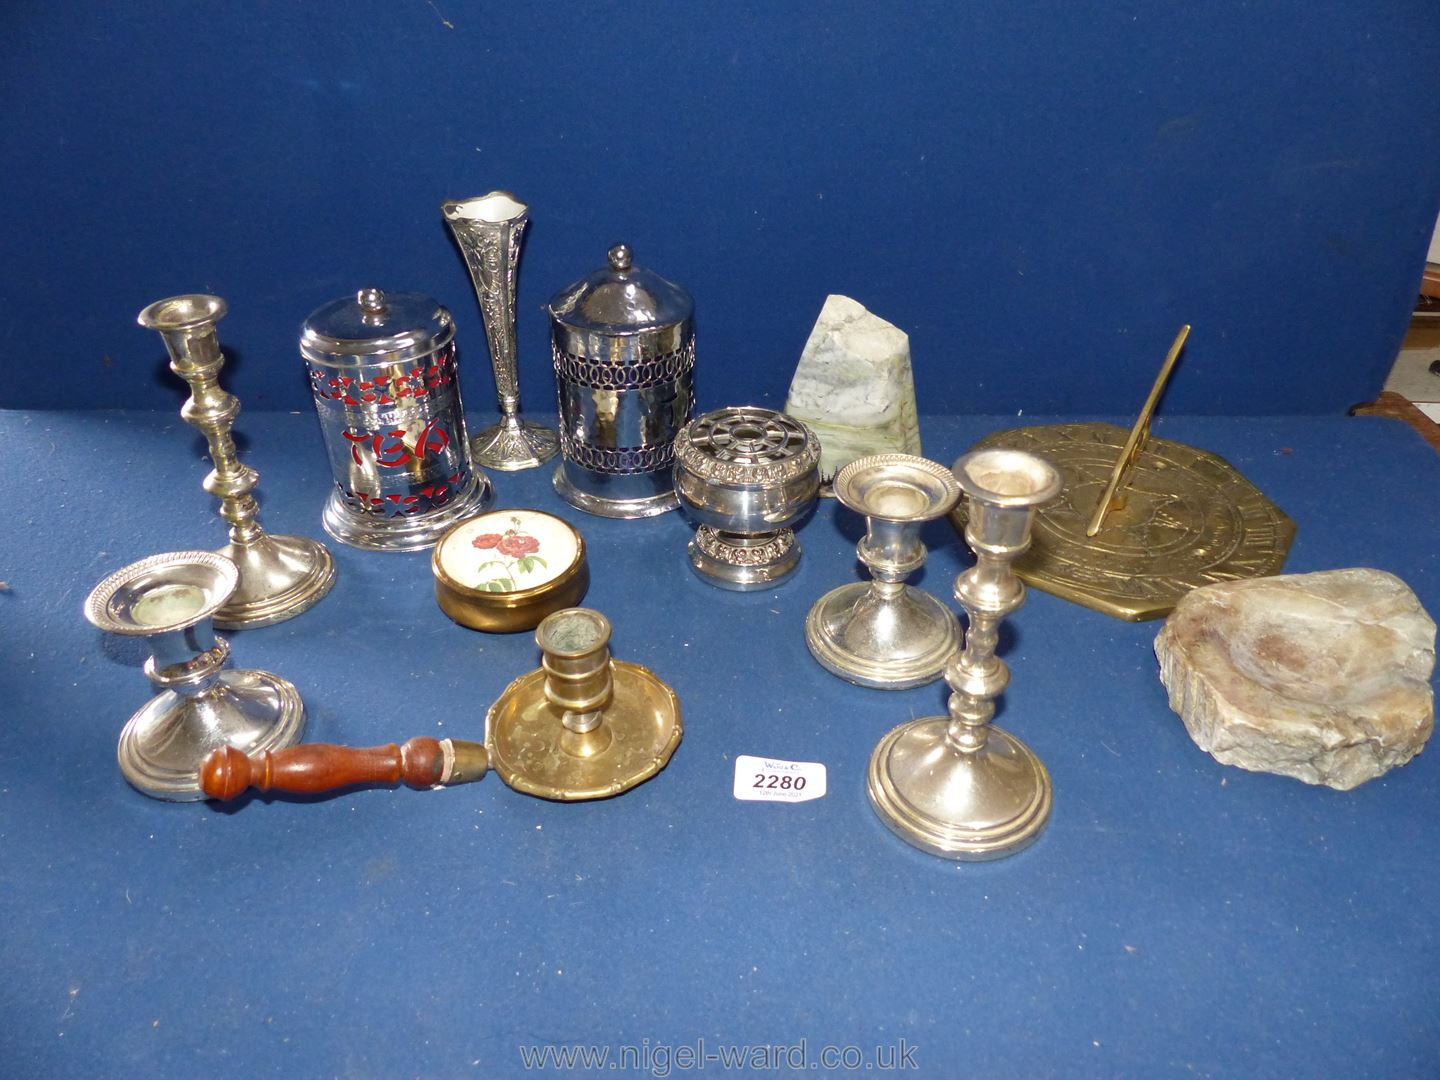 Miscellaneous metalware including two pairs of silver plated candlesticks, two tea caddies, - Image 4 of 4